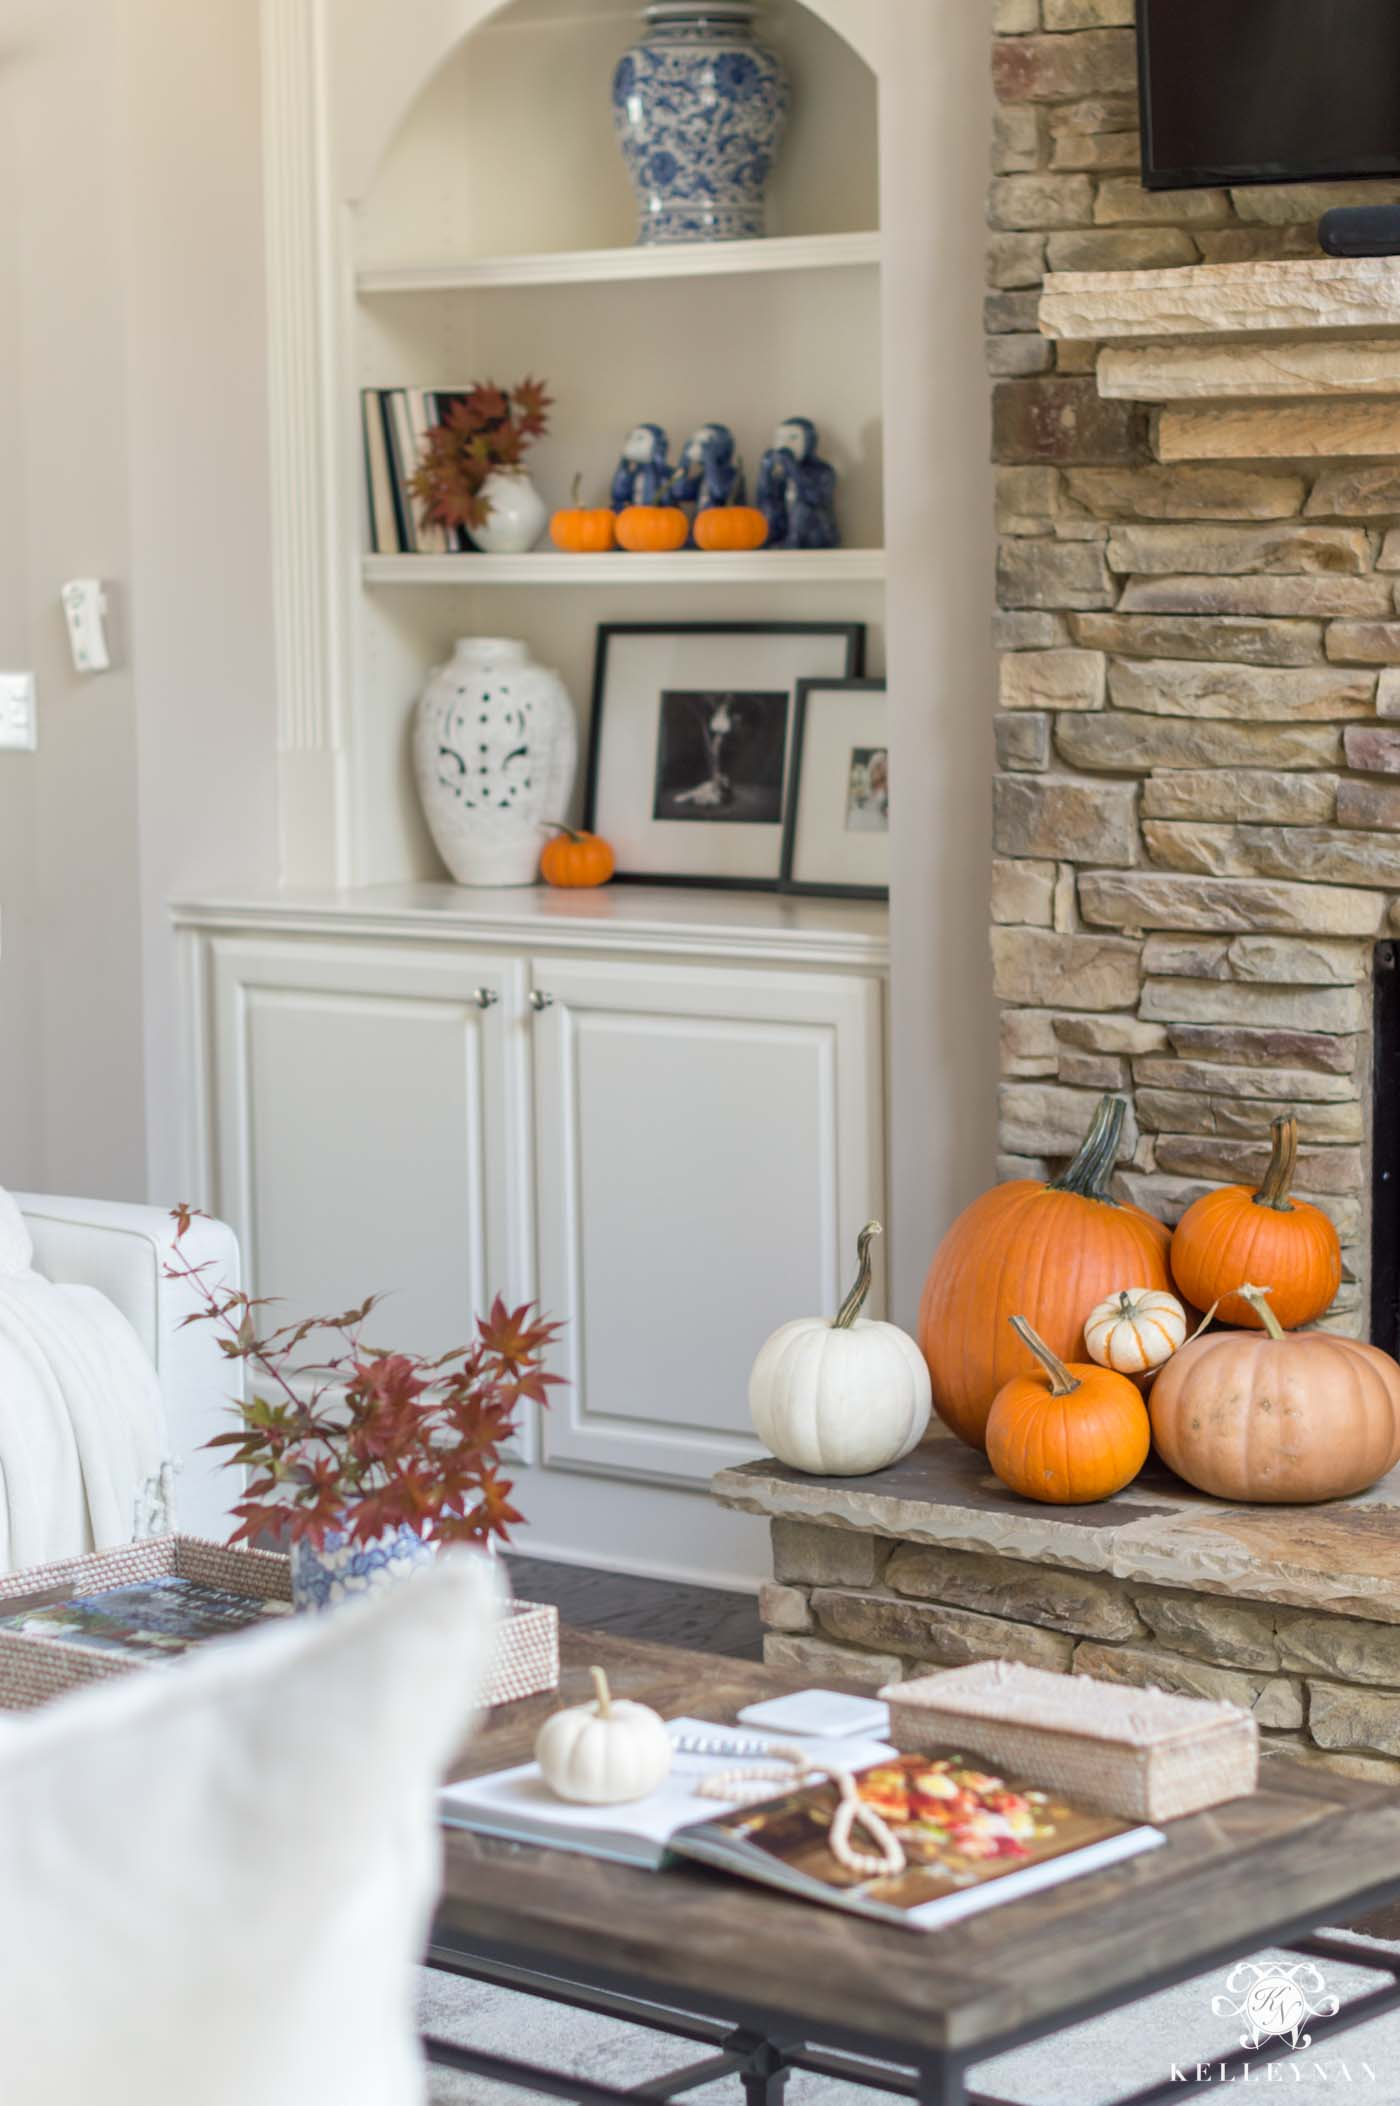 Fall decorating ideas with orange pumpkins